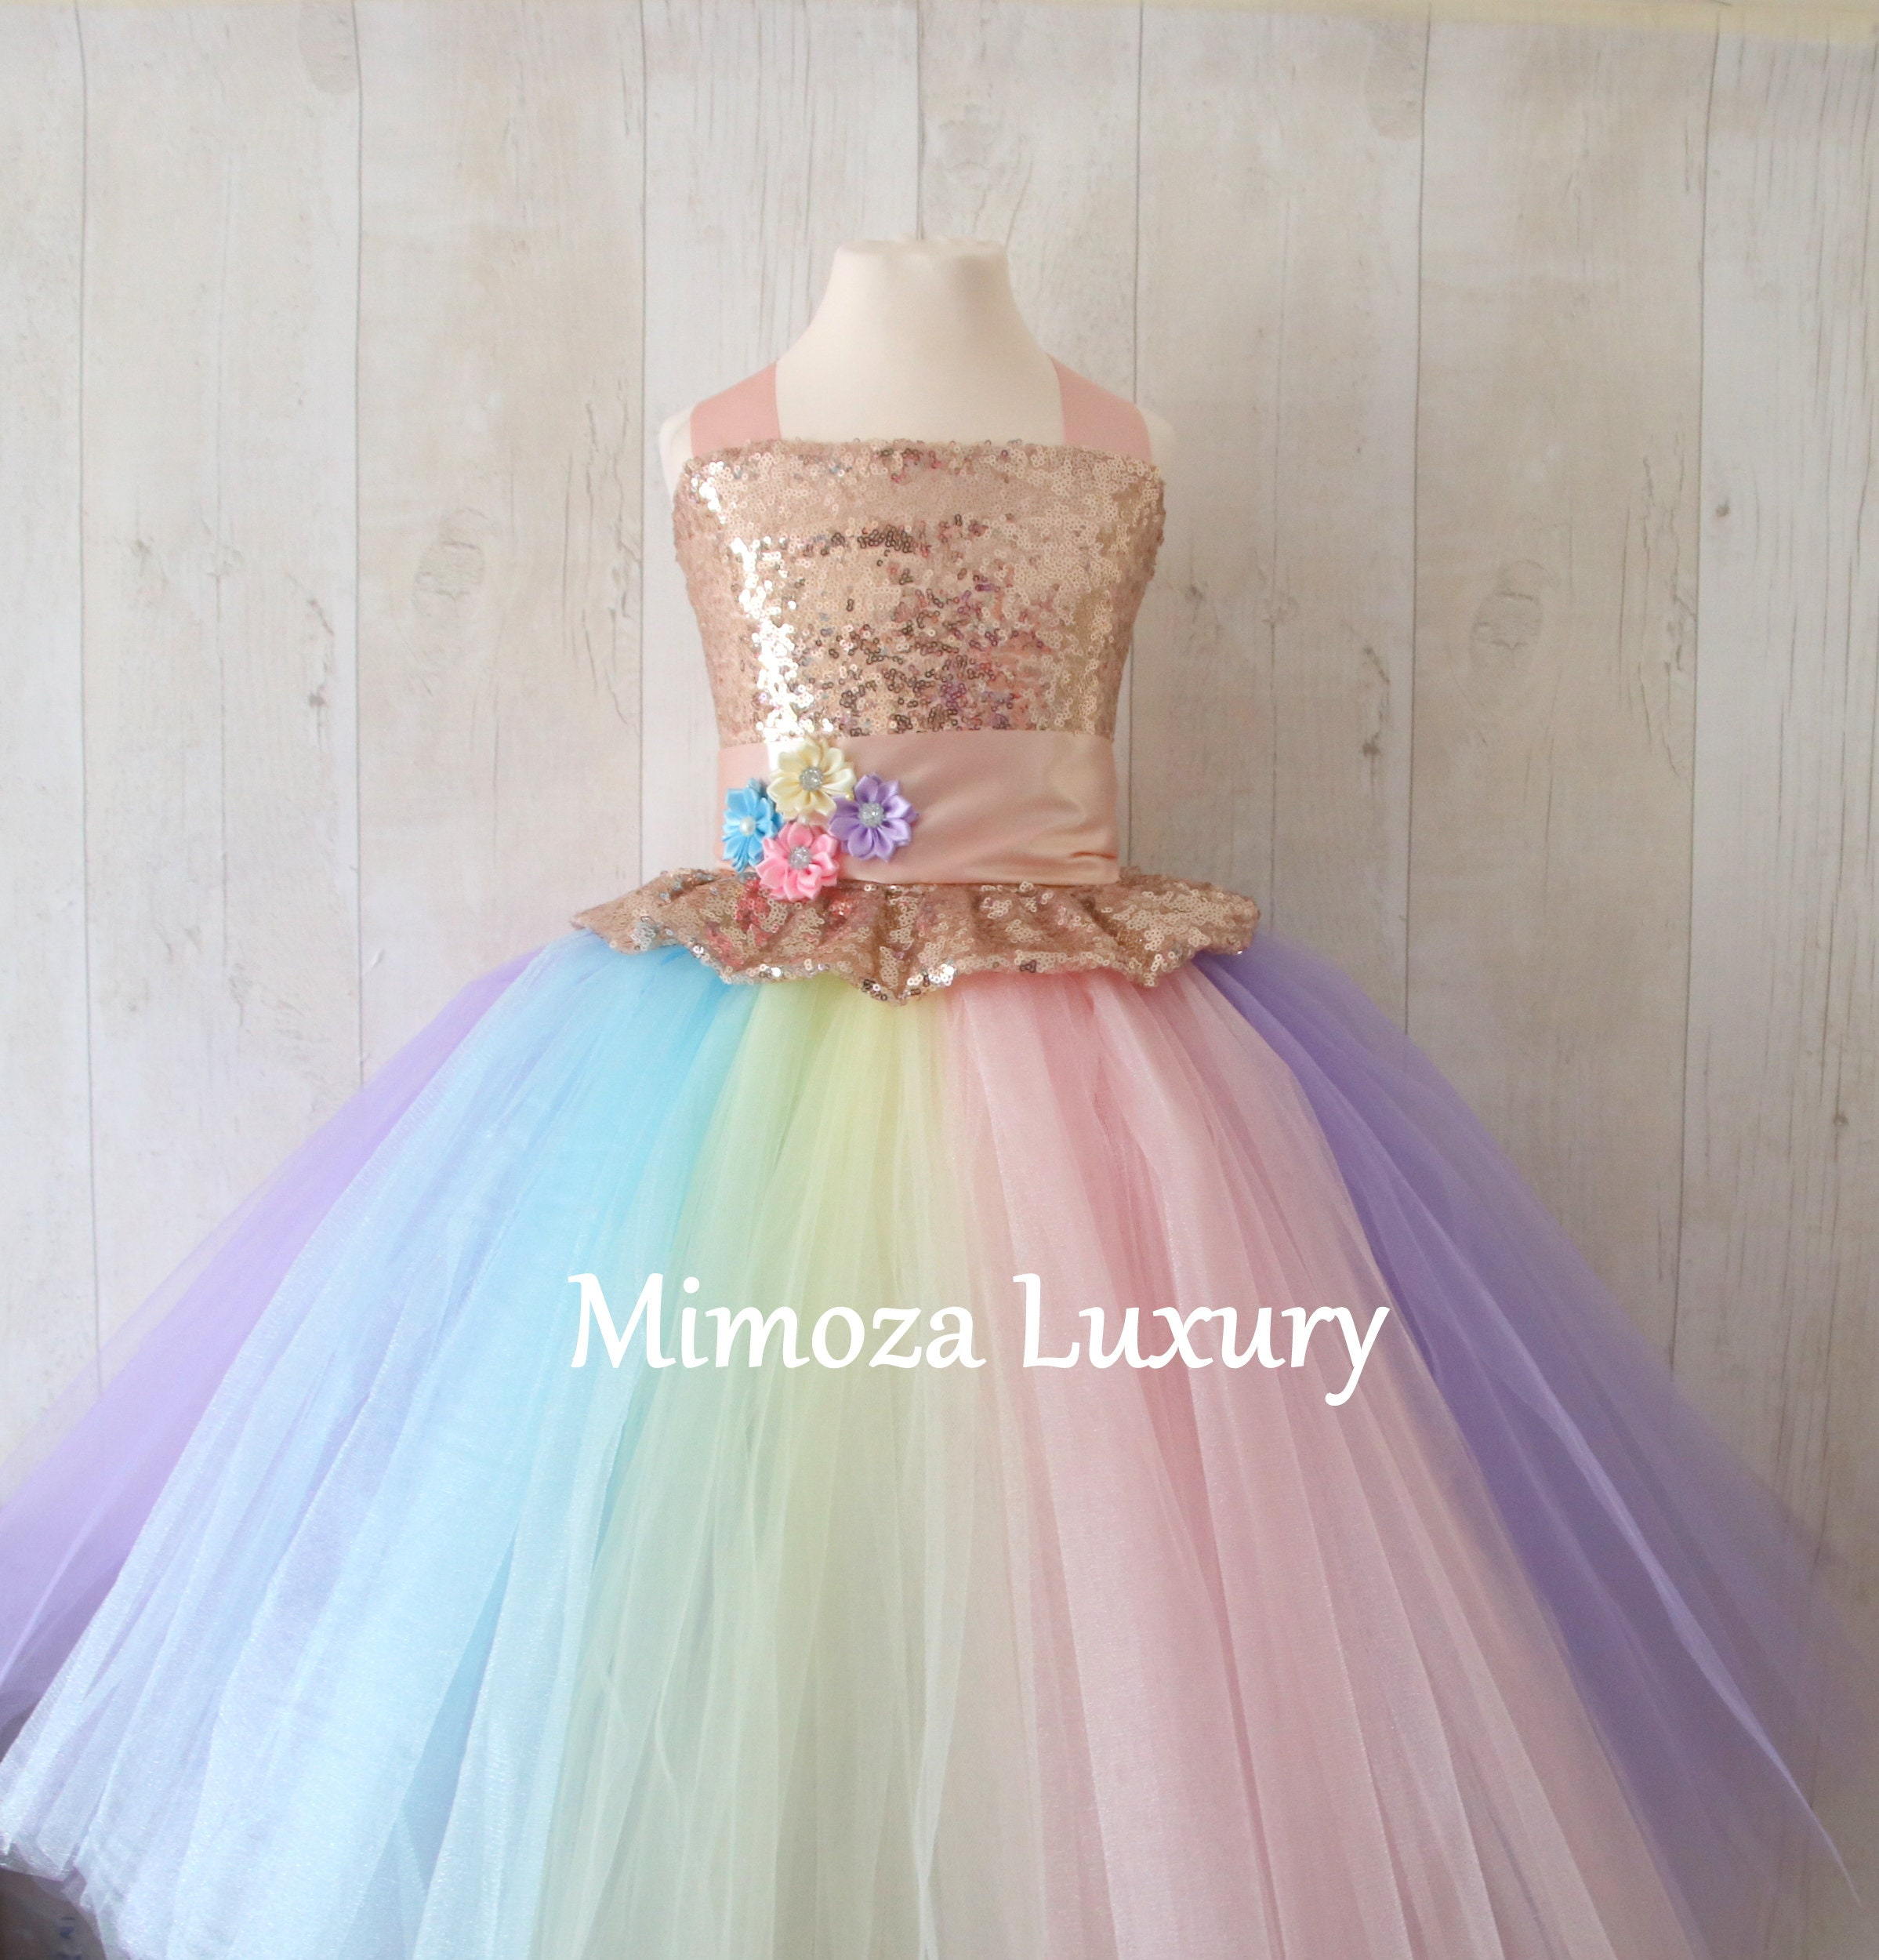 Luxury Unicorn Birthday Dress Unicorn Tutu Dress Rainbow